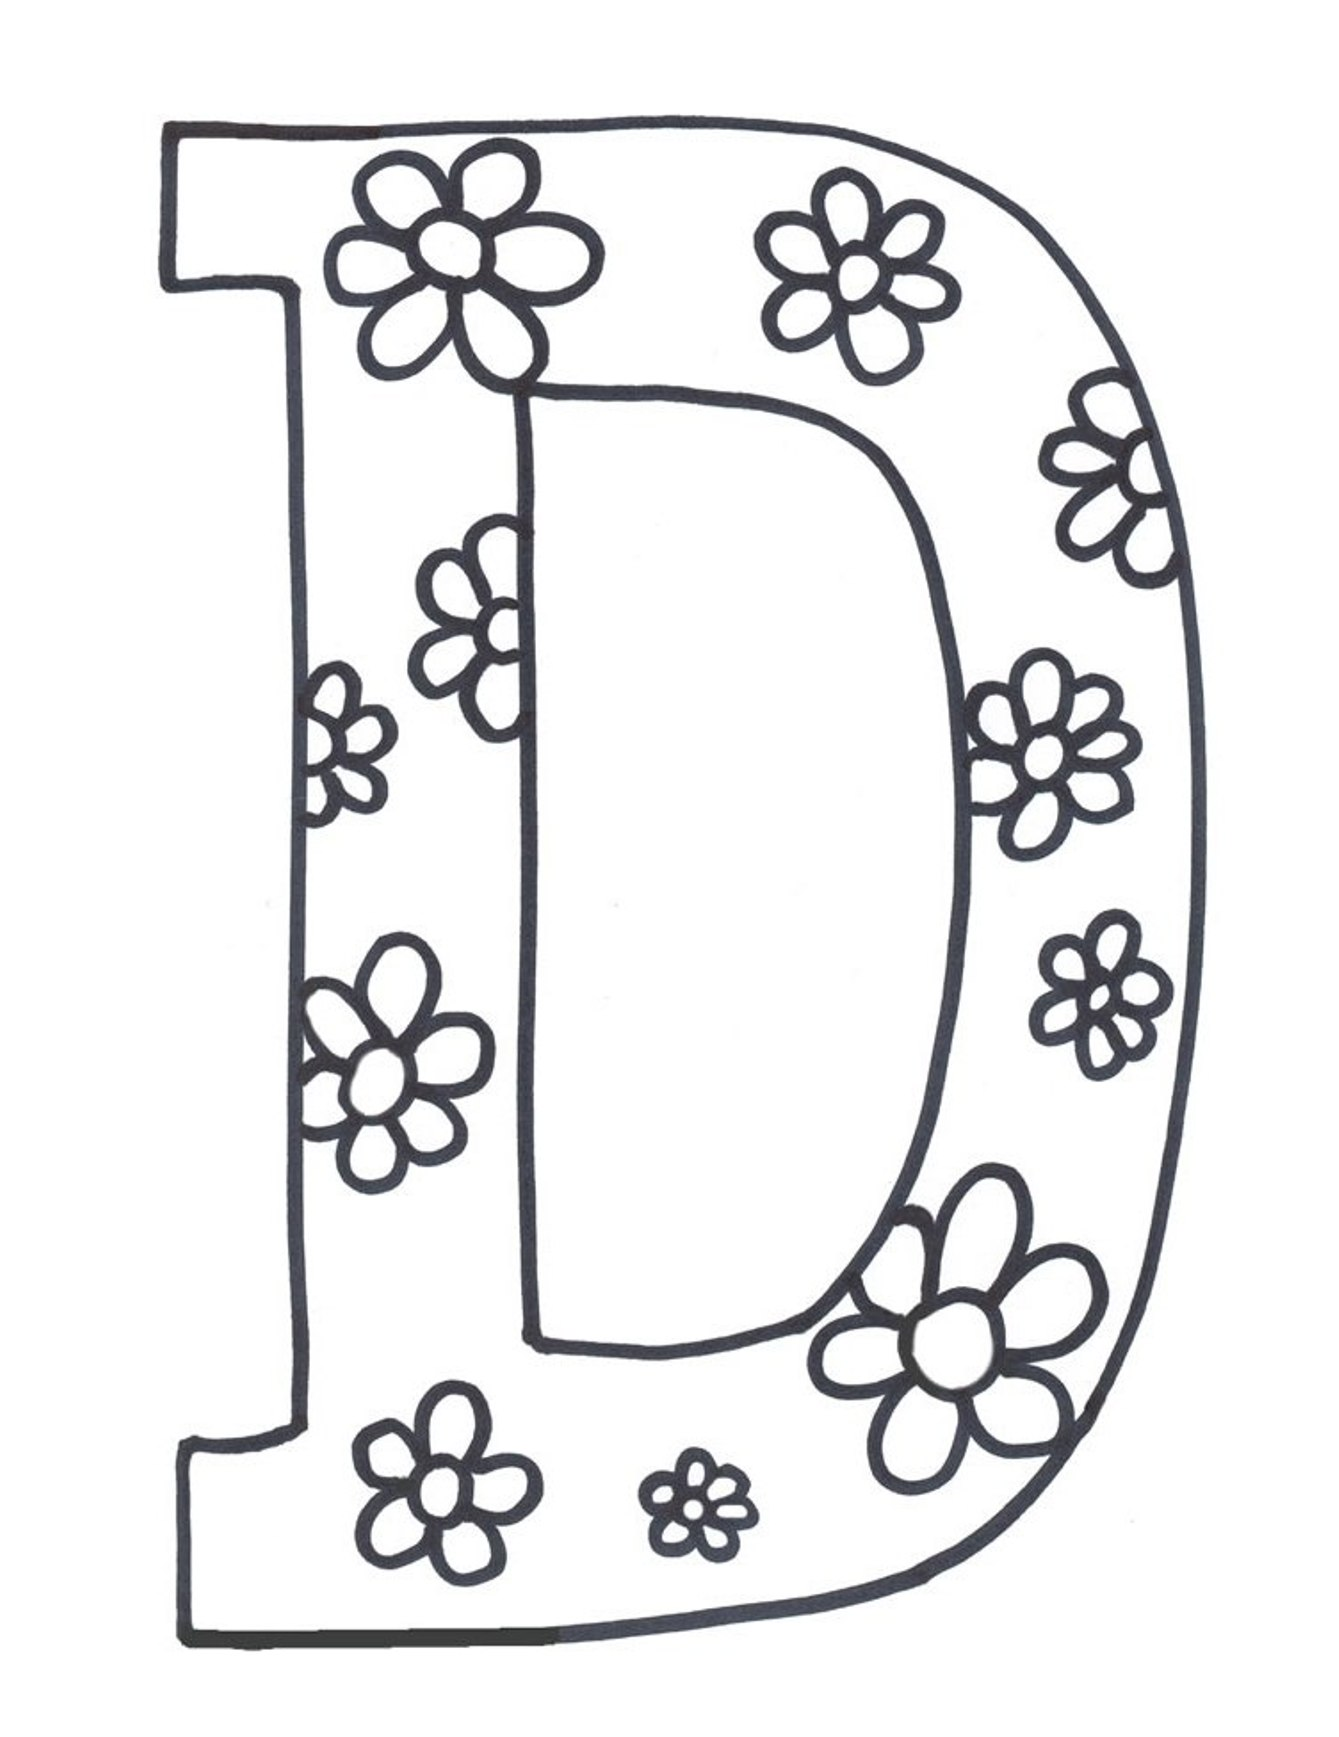 Free Printable Letter Coloring Pages at GetDrawings.com